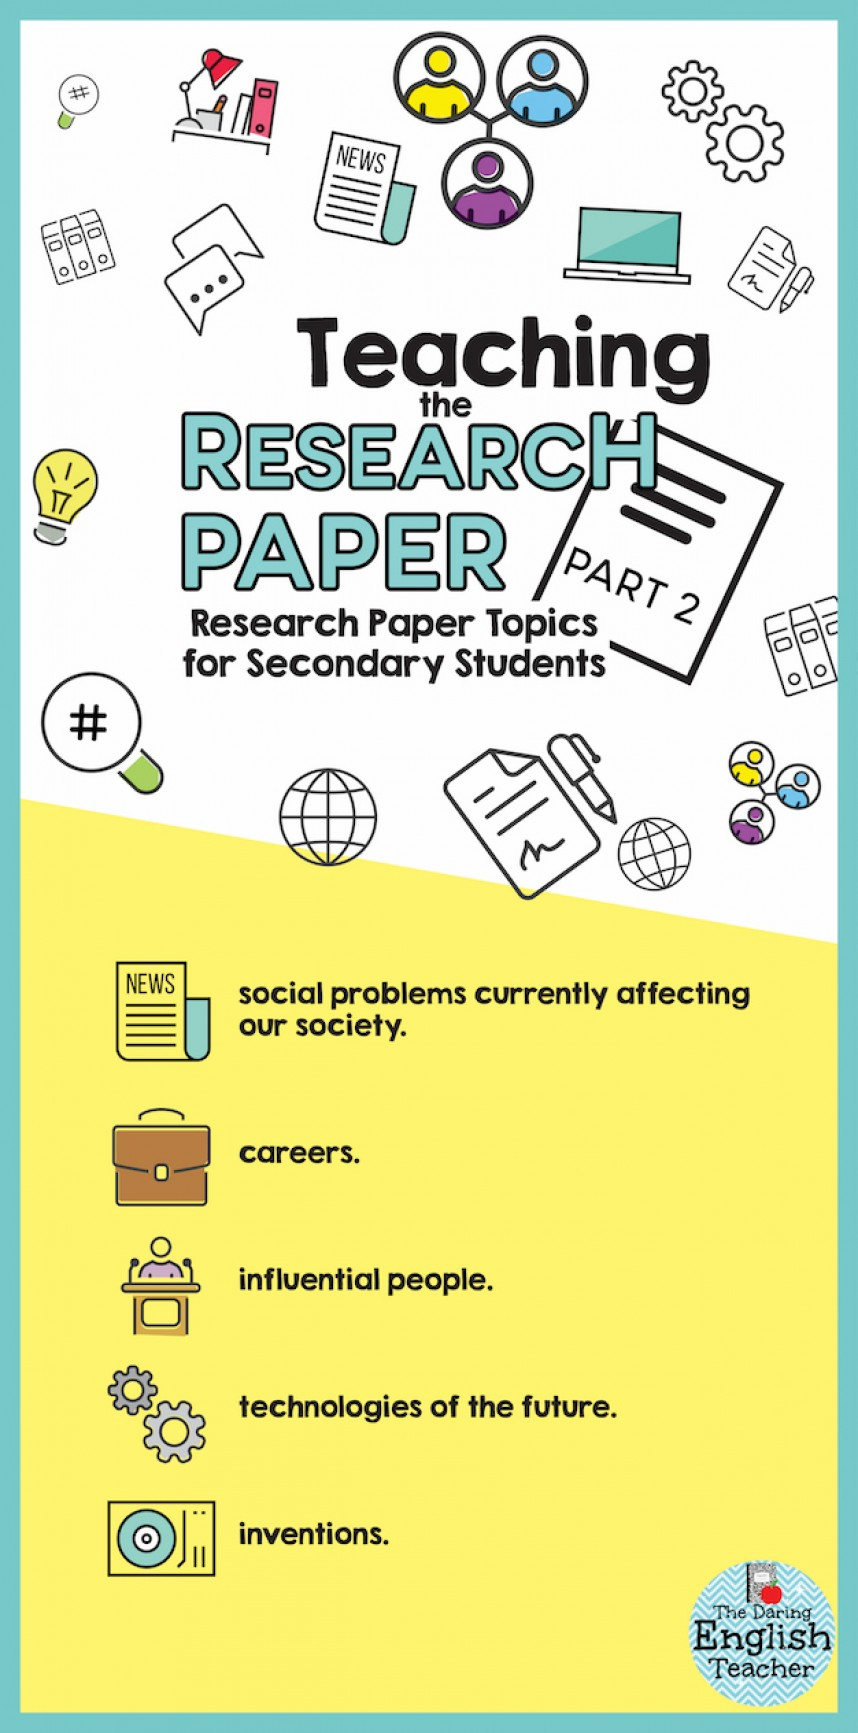 012 Research Paper Infographic2bp22b2 Topics High Incredible School Argumentative Biology Physics 868